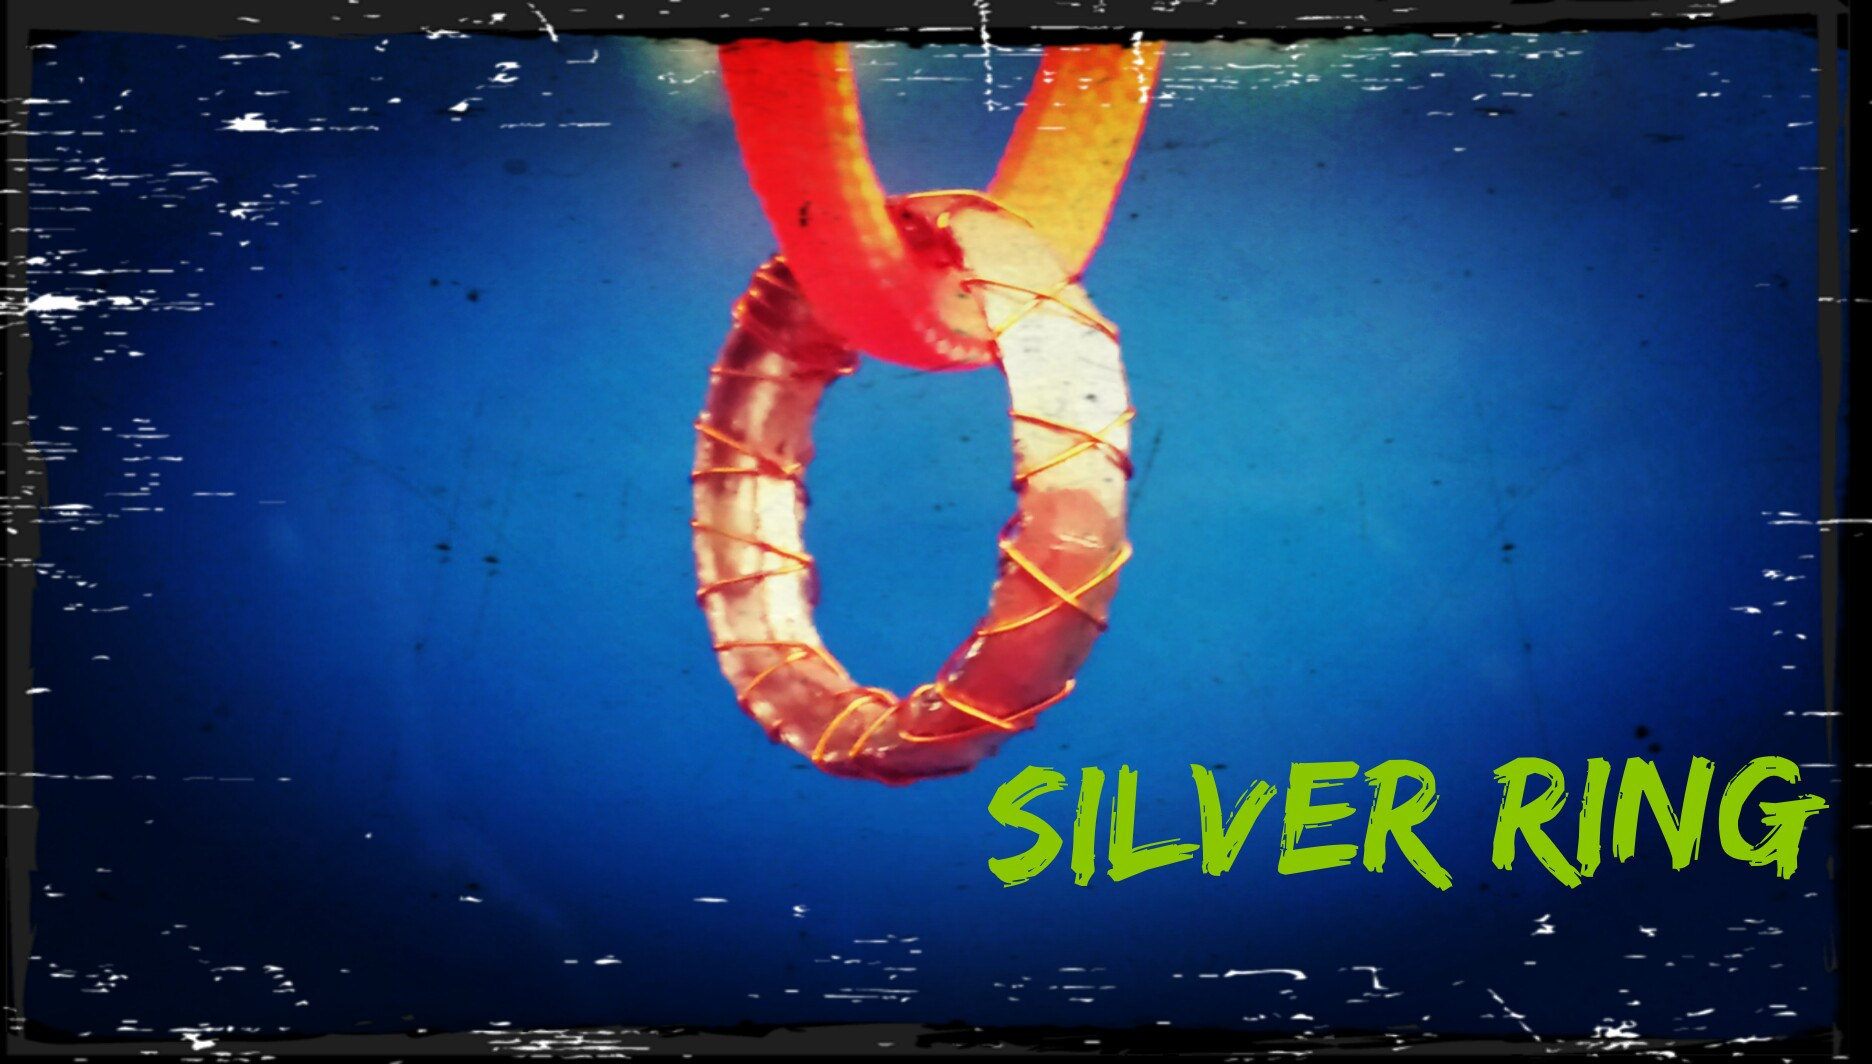 silver ring for only 25¢